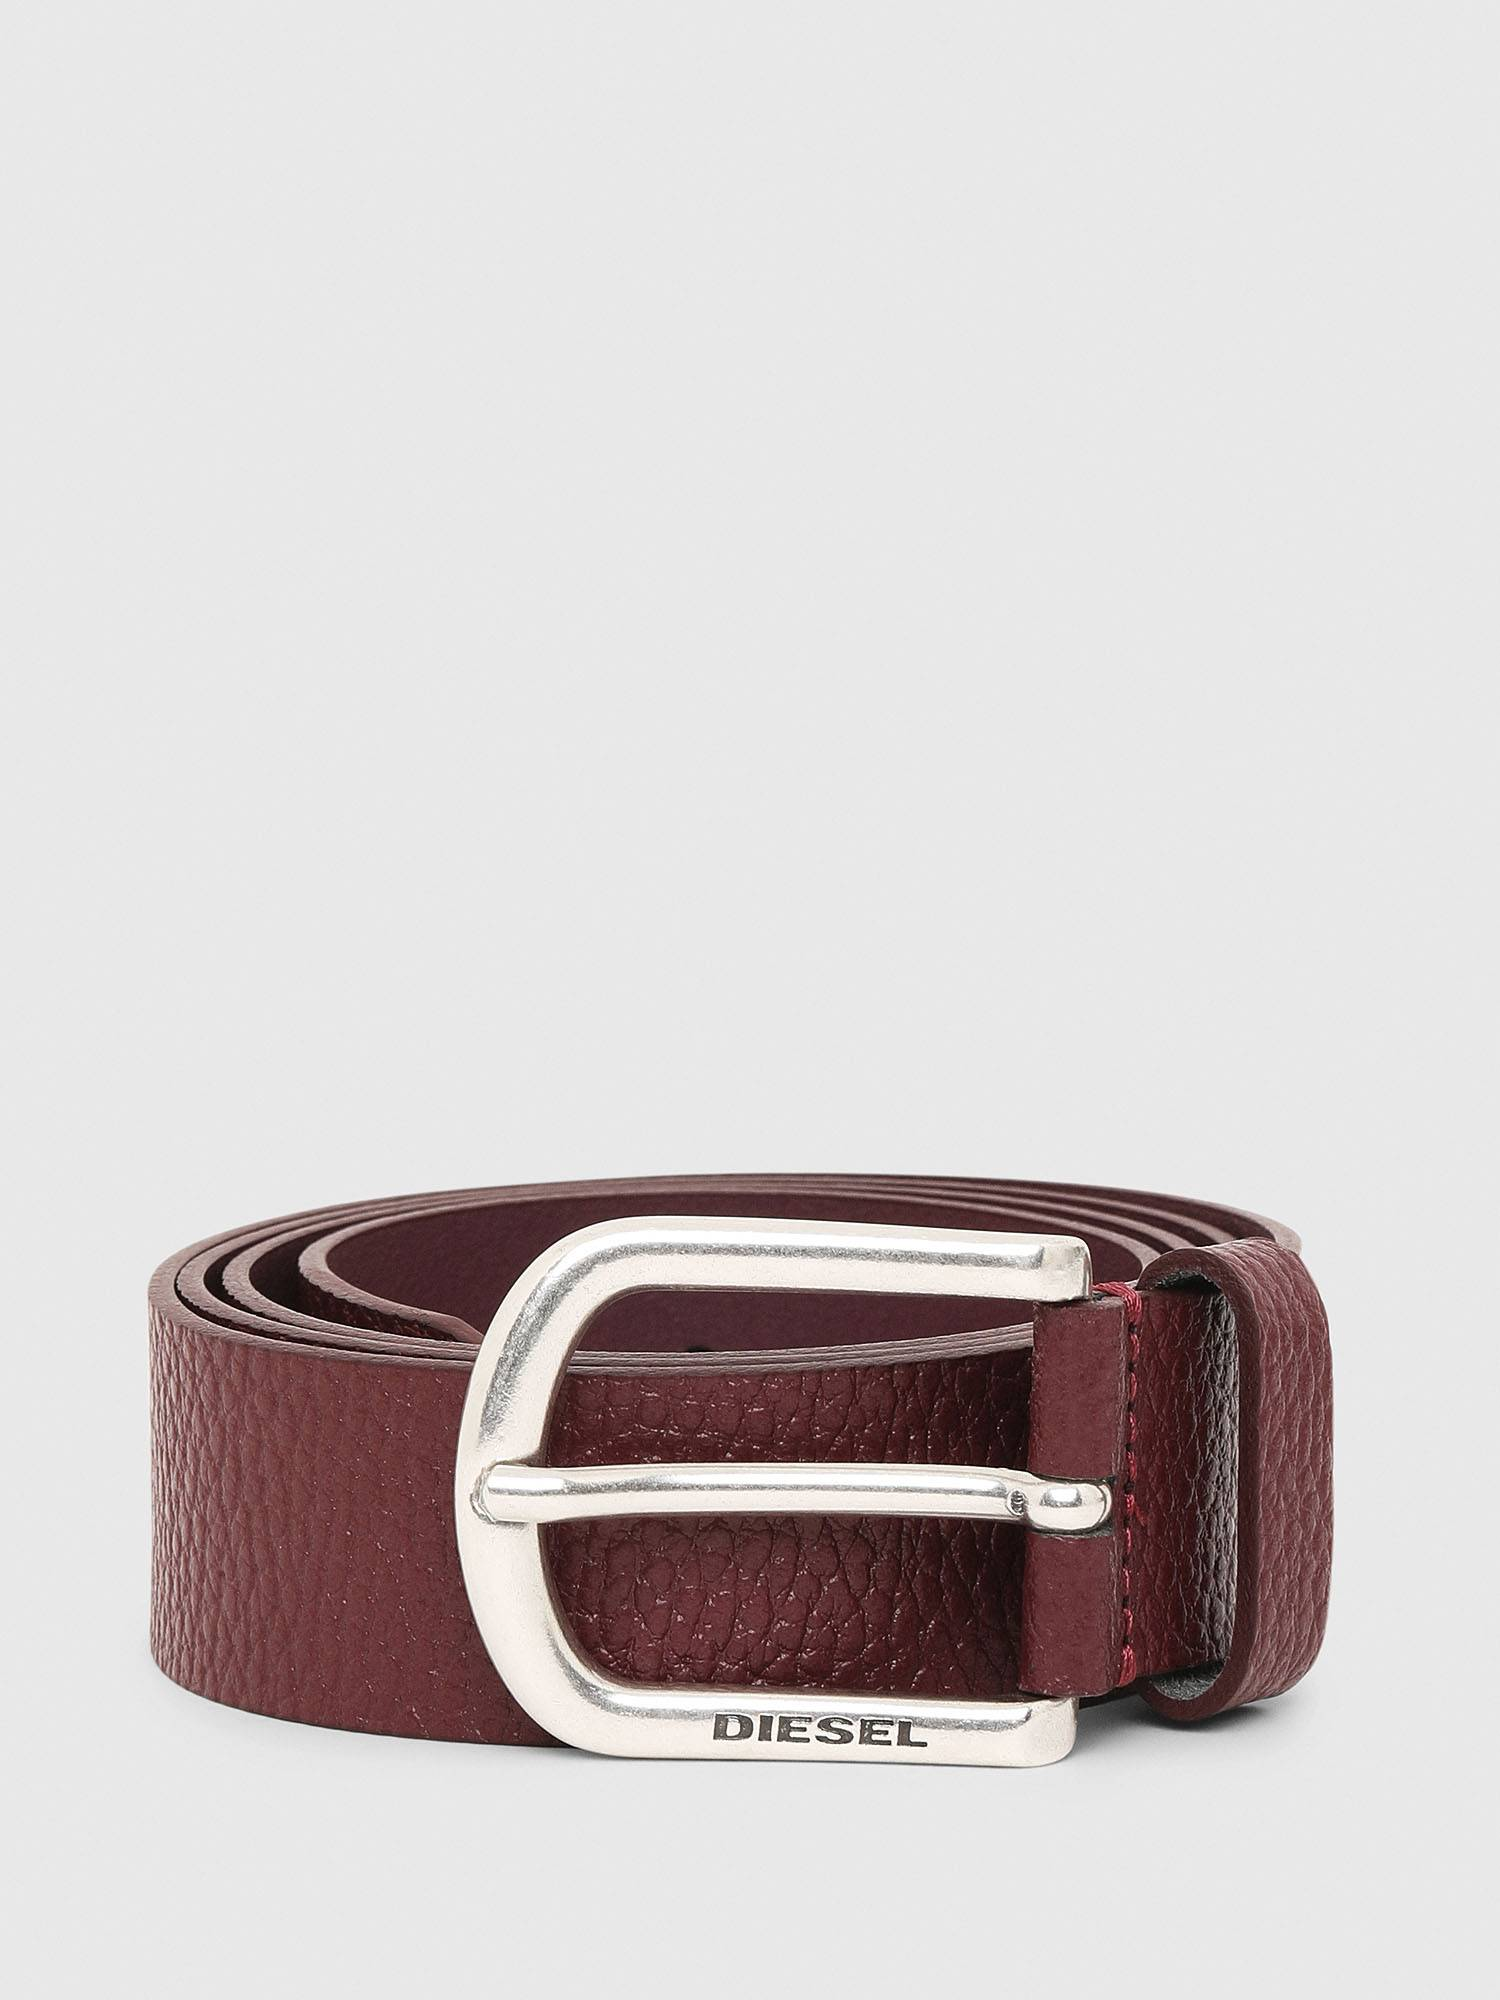 Diesel Belts P0396 - Red - 95  - Red - Size: 95